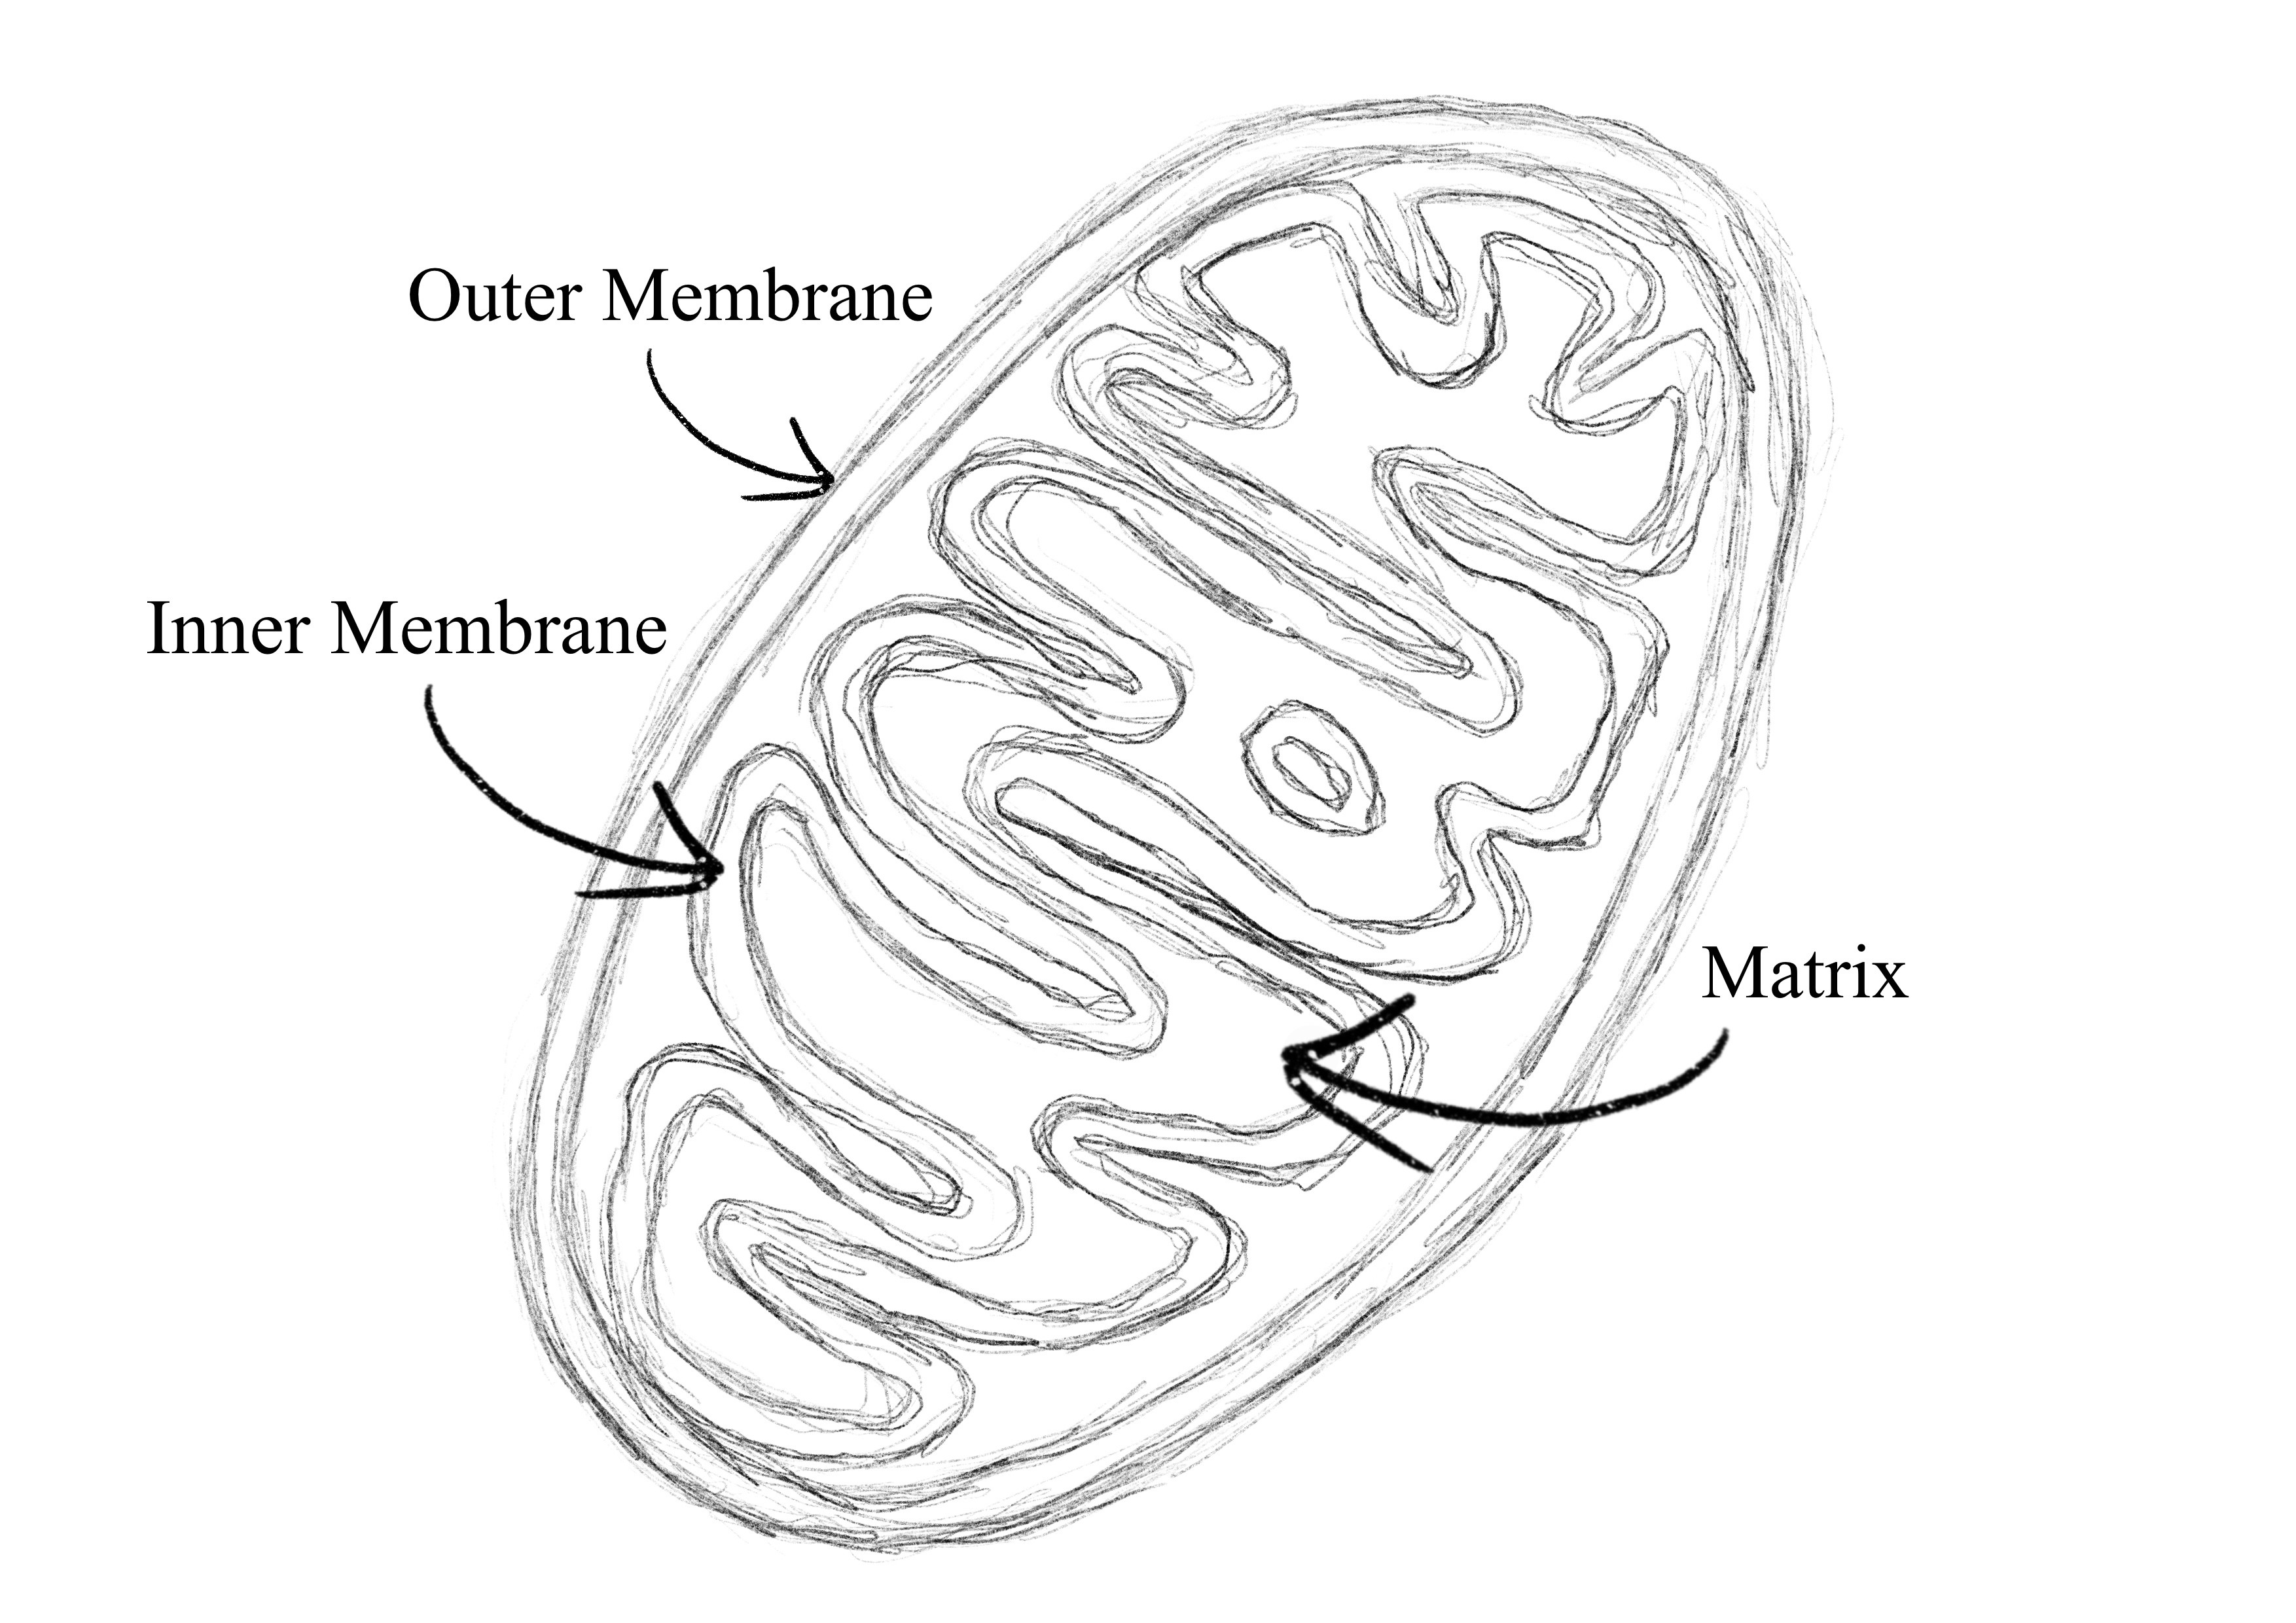 Sketch of Mitochondrion